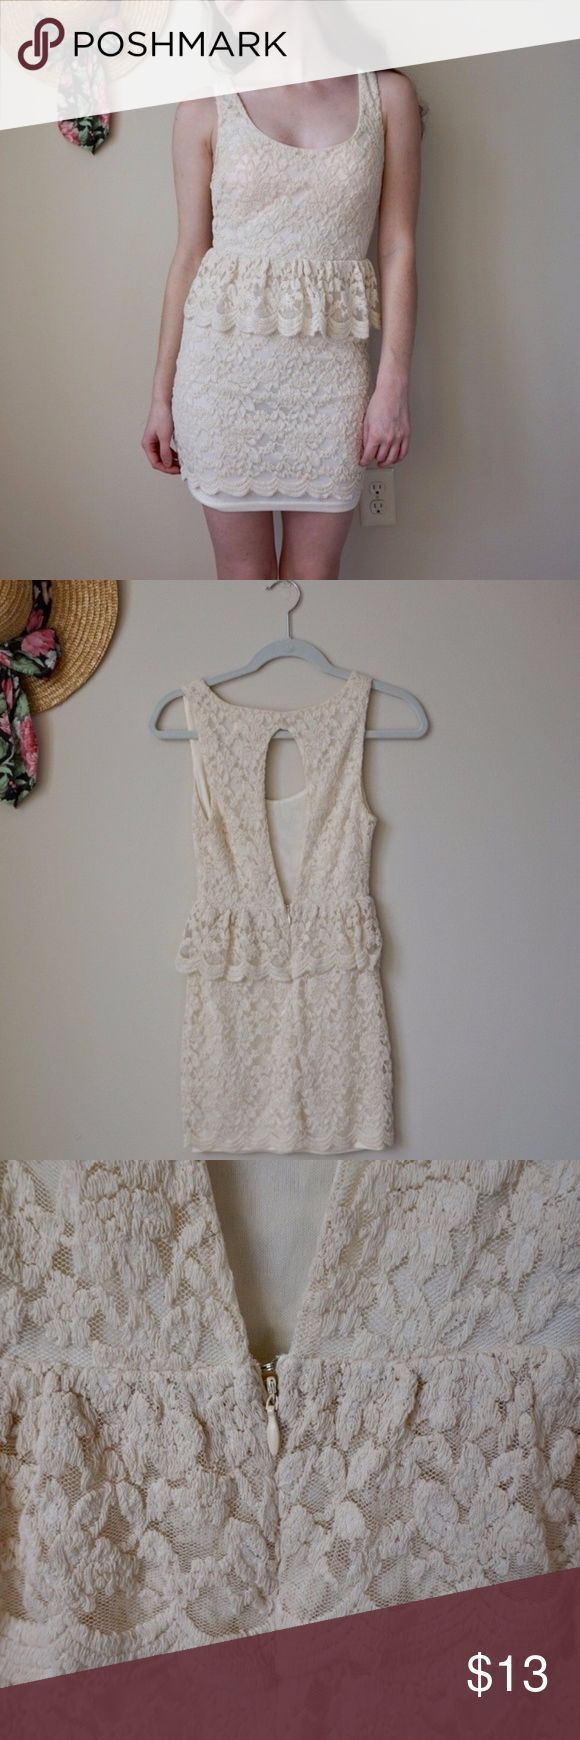 Urban Outfitters Cream Peplum Lace Dress Size XS Size: XS Brand: Pins and Needles from Urban Outfitters Color: Cream Style: A stretchy cream dress with lace overlay and peplum shape. Has a cutout on the back with a zipper that goes up the back Fit: True to size (in my opinion) Condition: Some little snags in the lace; My mom washed it in the washer, causing the lace overlay to shrink a bit. If this bothers you it could be hemmed :) Bust: 26 in Length: 23 in Model's Measurements: 5'2, 100lbs…